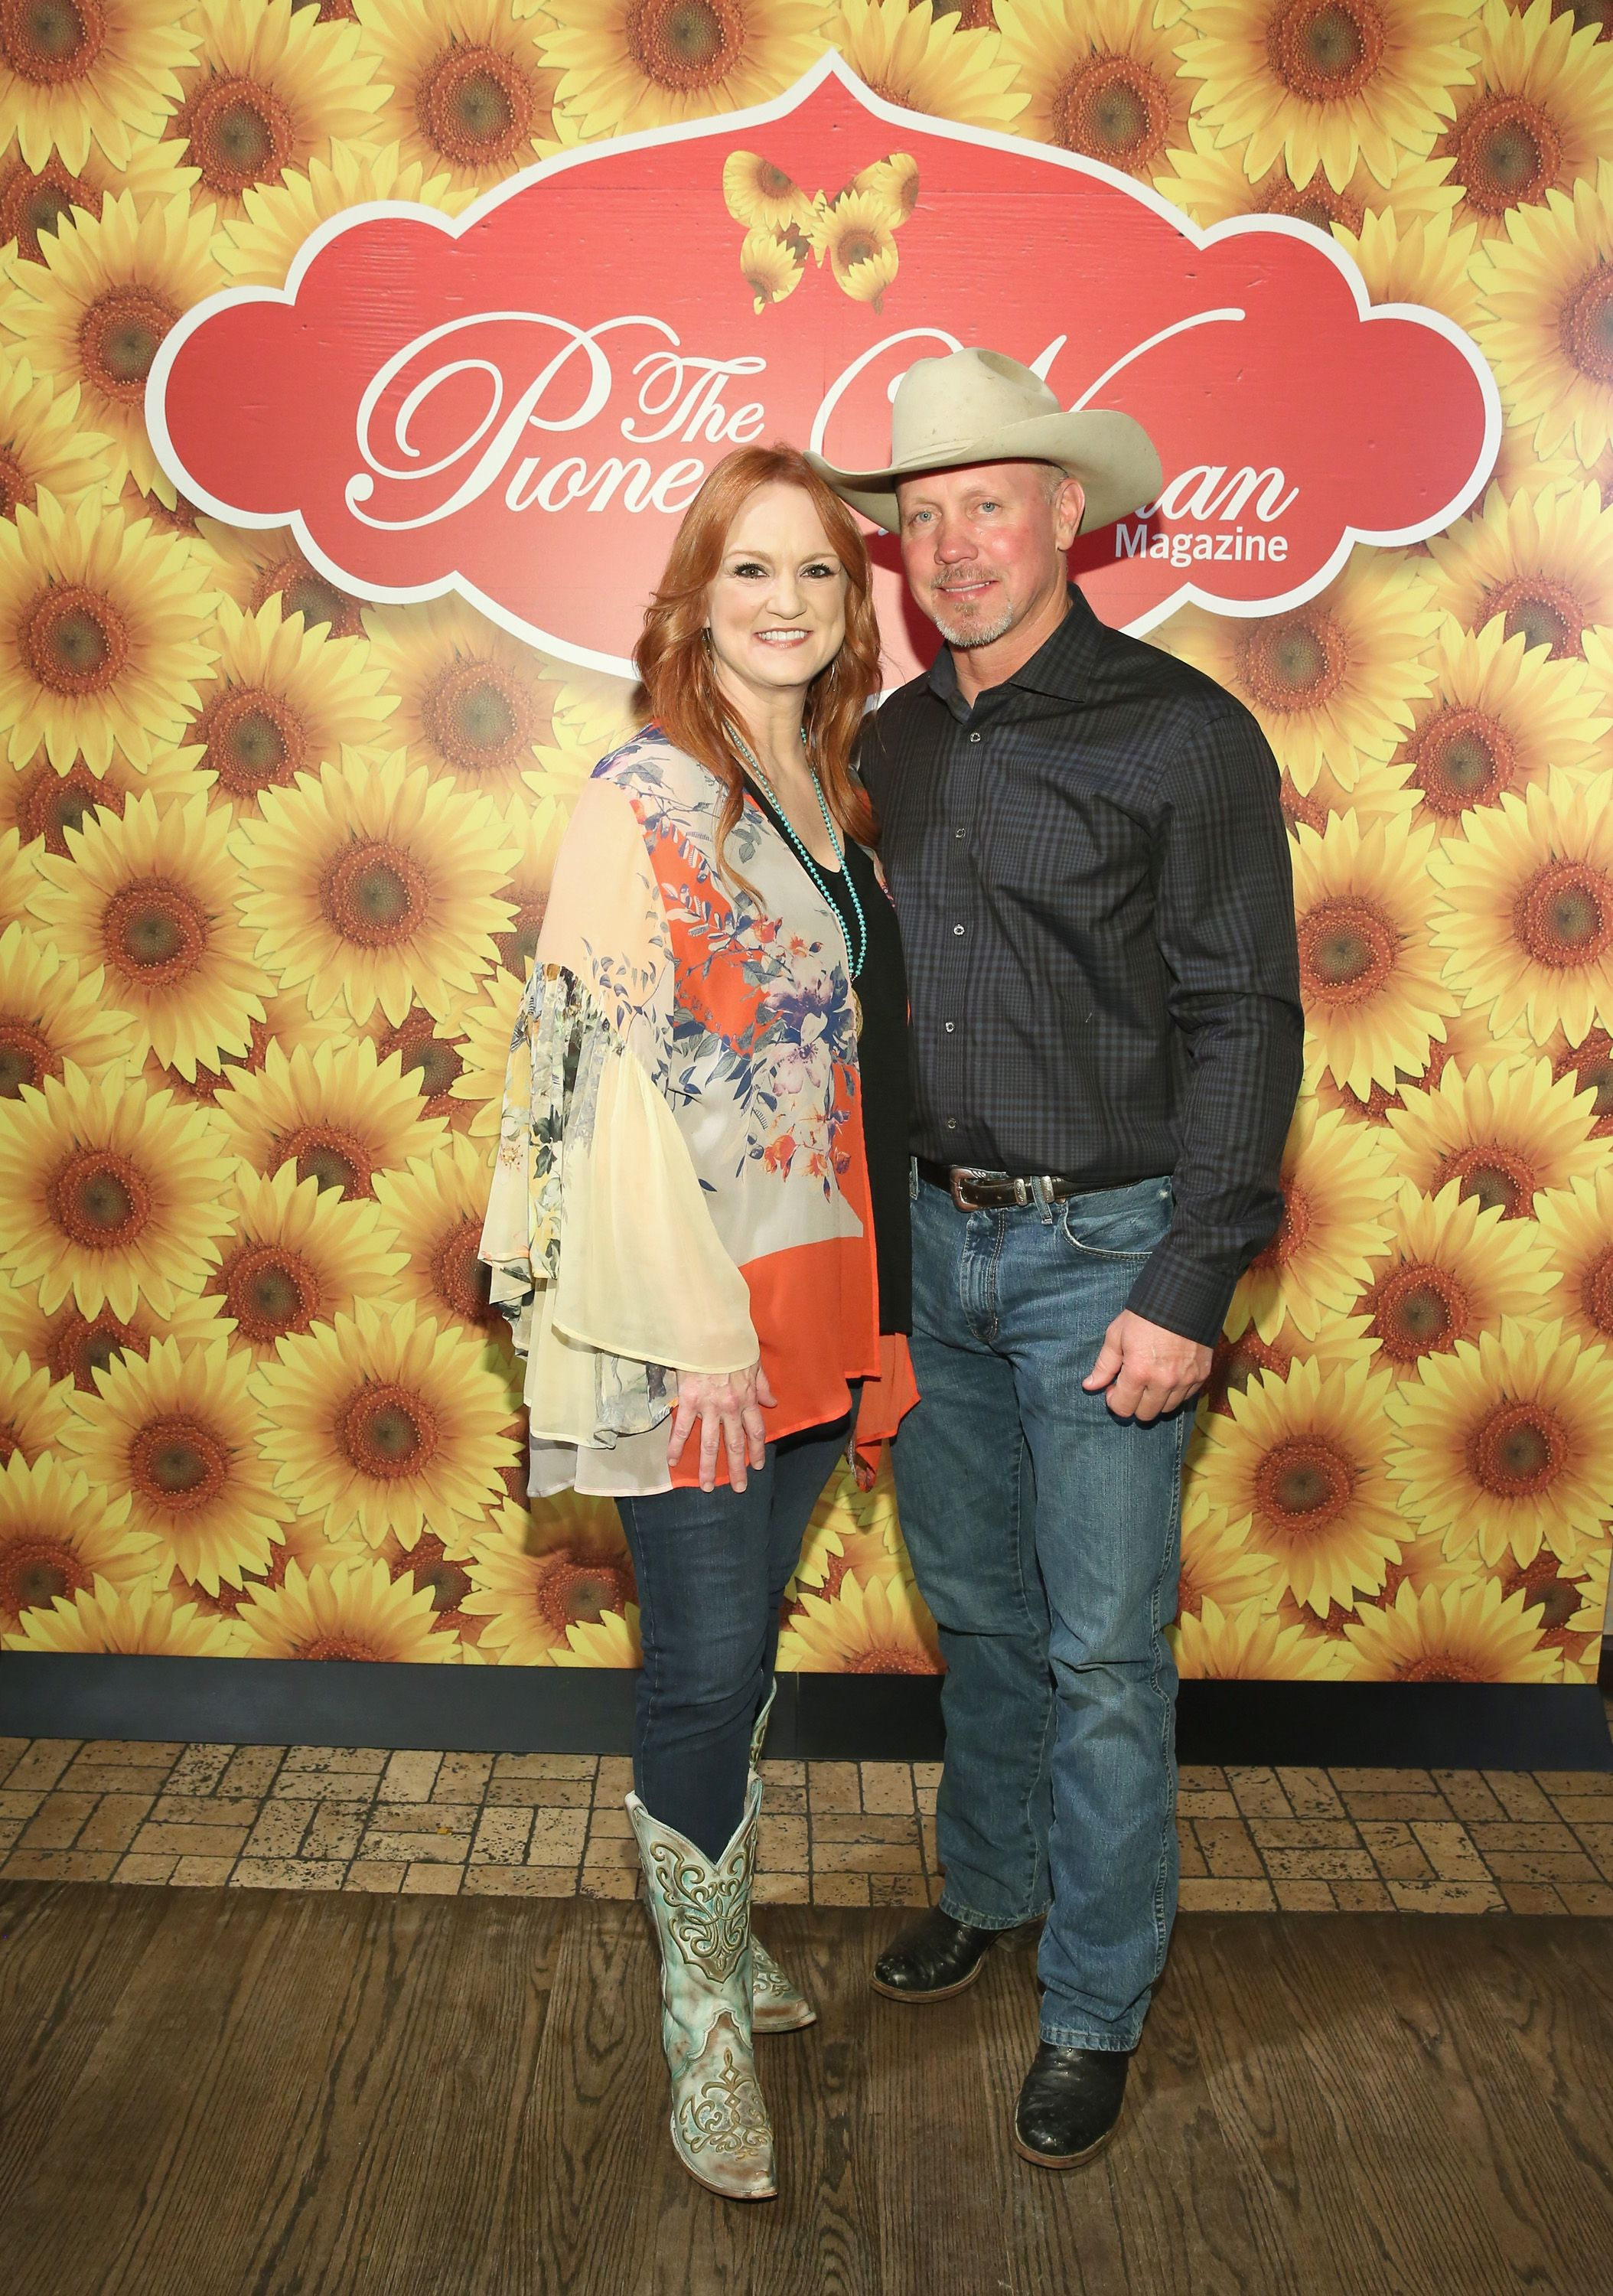 Ree Drummond and Ladd Drummond during The Pioneer Woman Magazine Celebration with Ree Drummond at The Mason Jar on June 6, 2017 in New York City. | Source: Getty Images